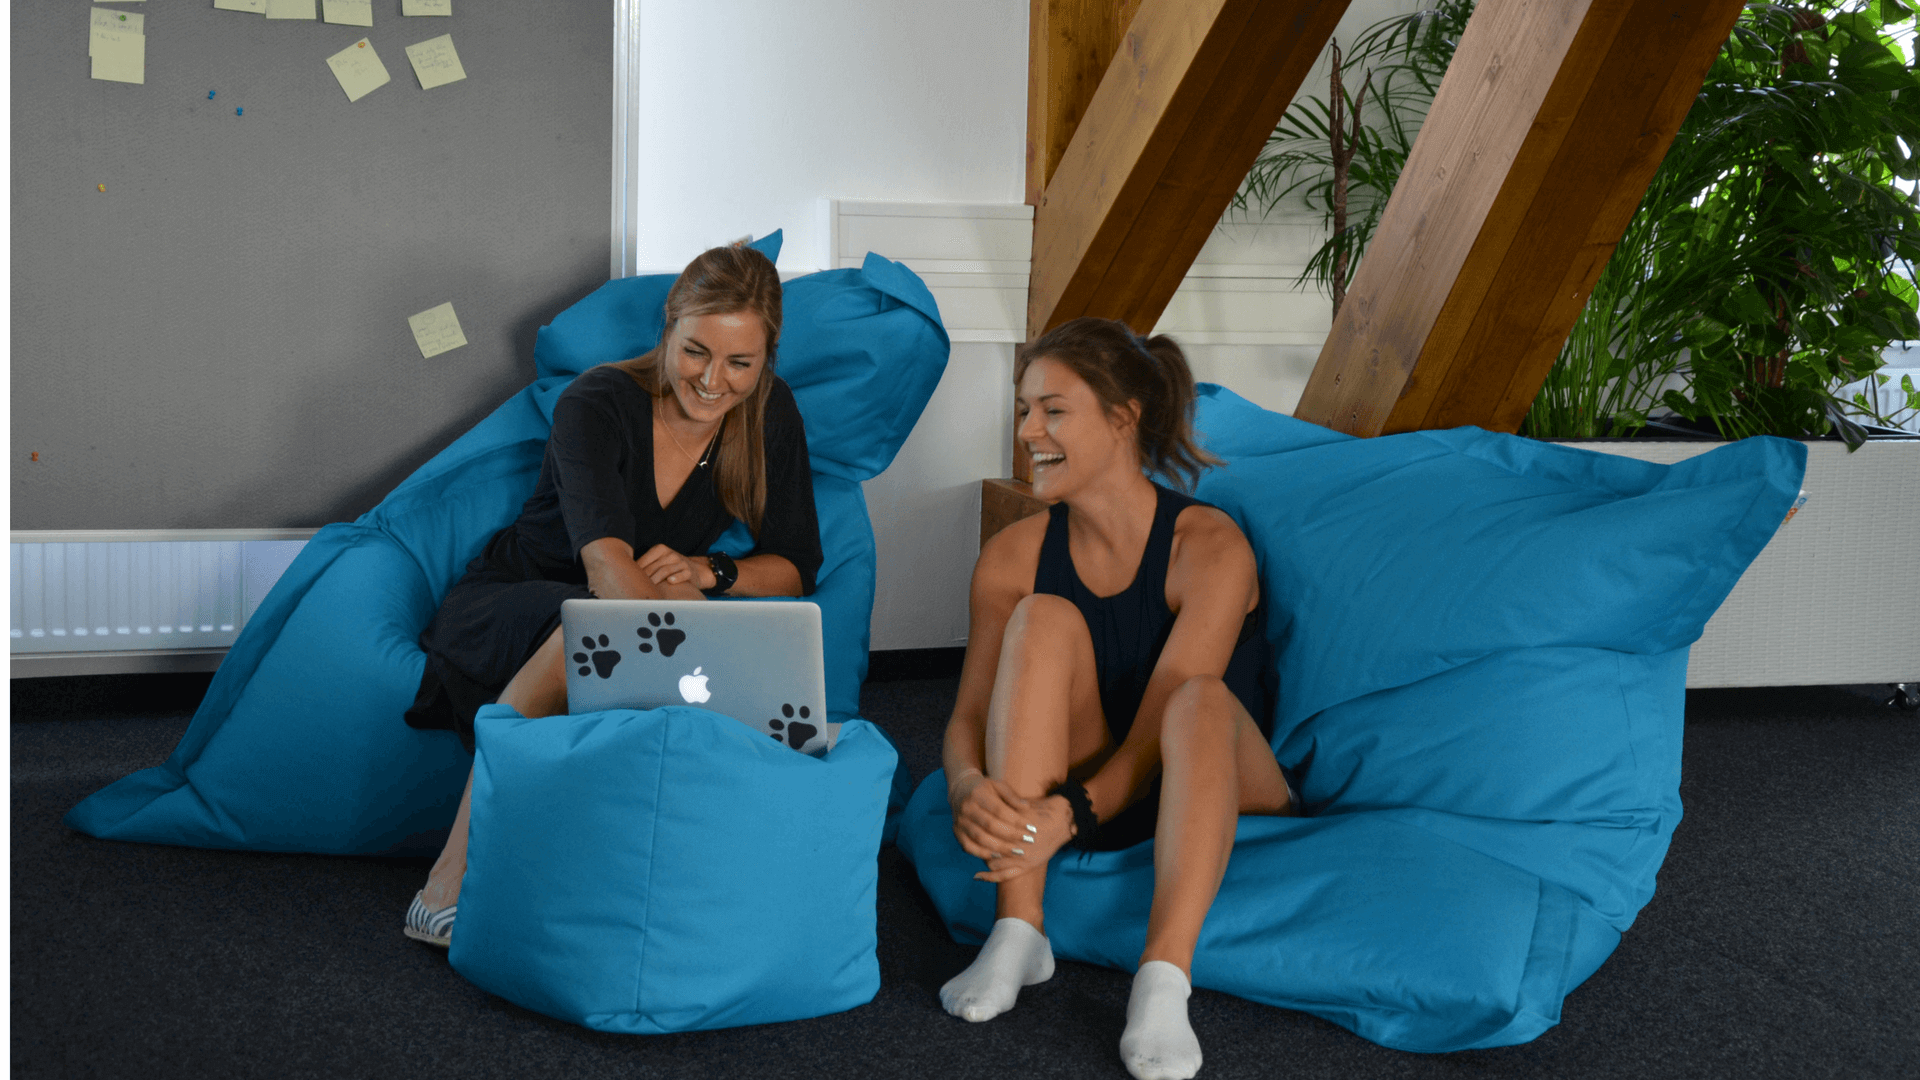 A Marekting internship at Tractive is real fun